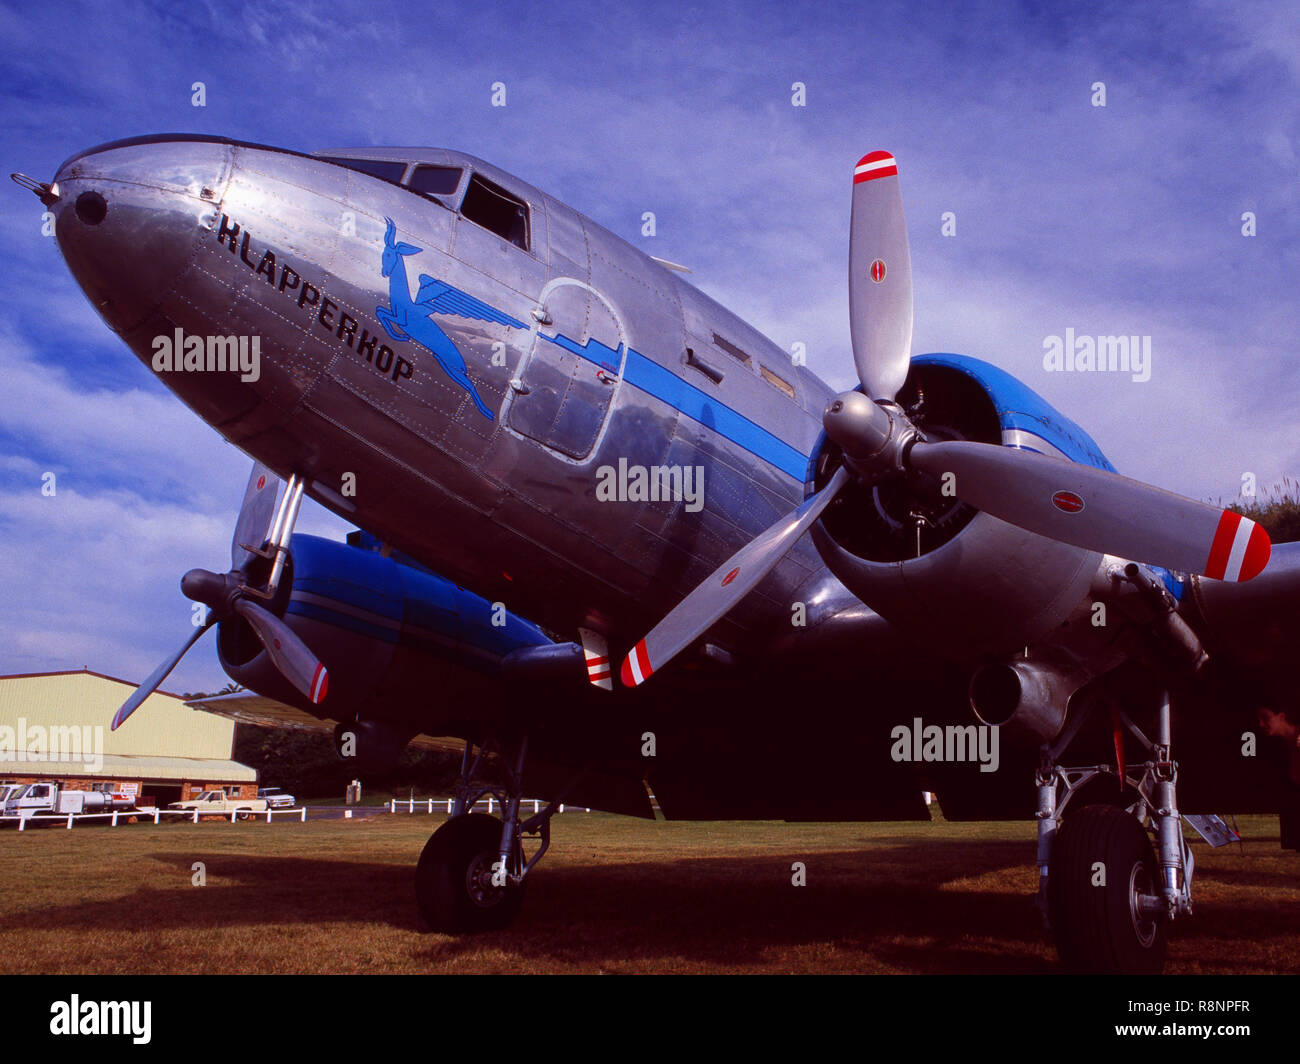 Zürich Airport: A South African Airways DC-10 Oldtimer airplaine - Stock Image